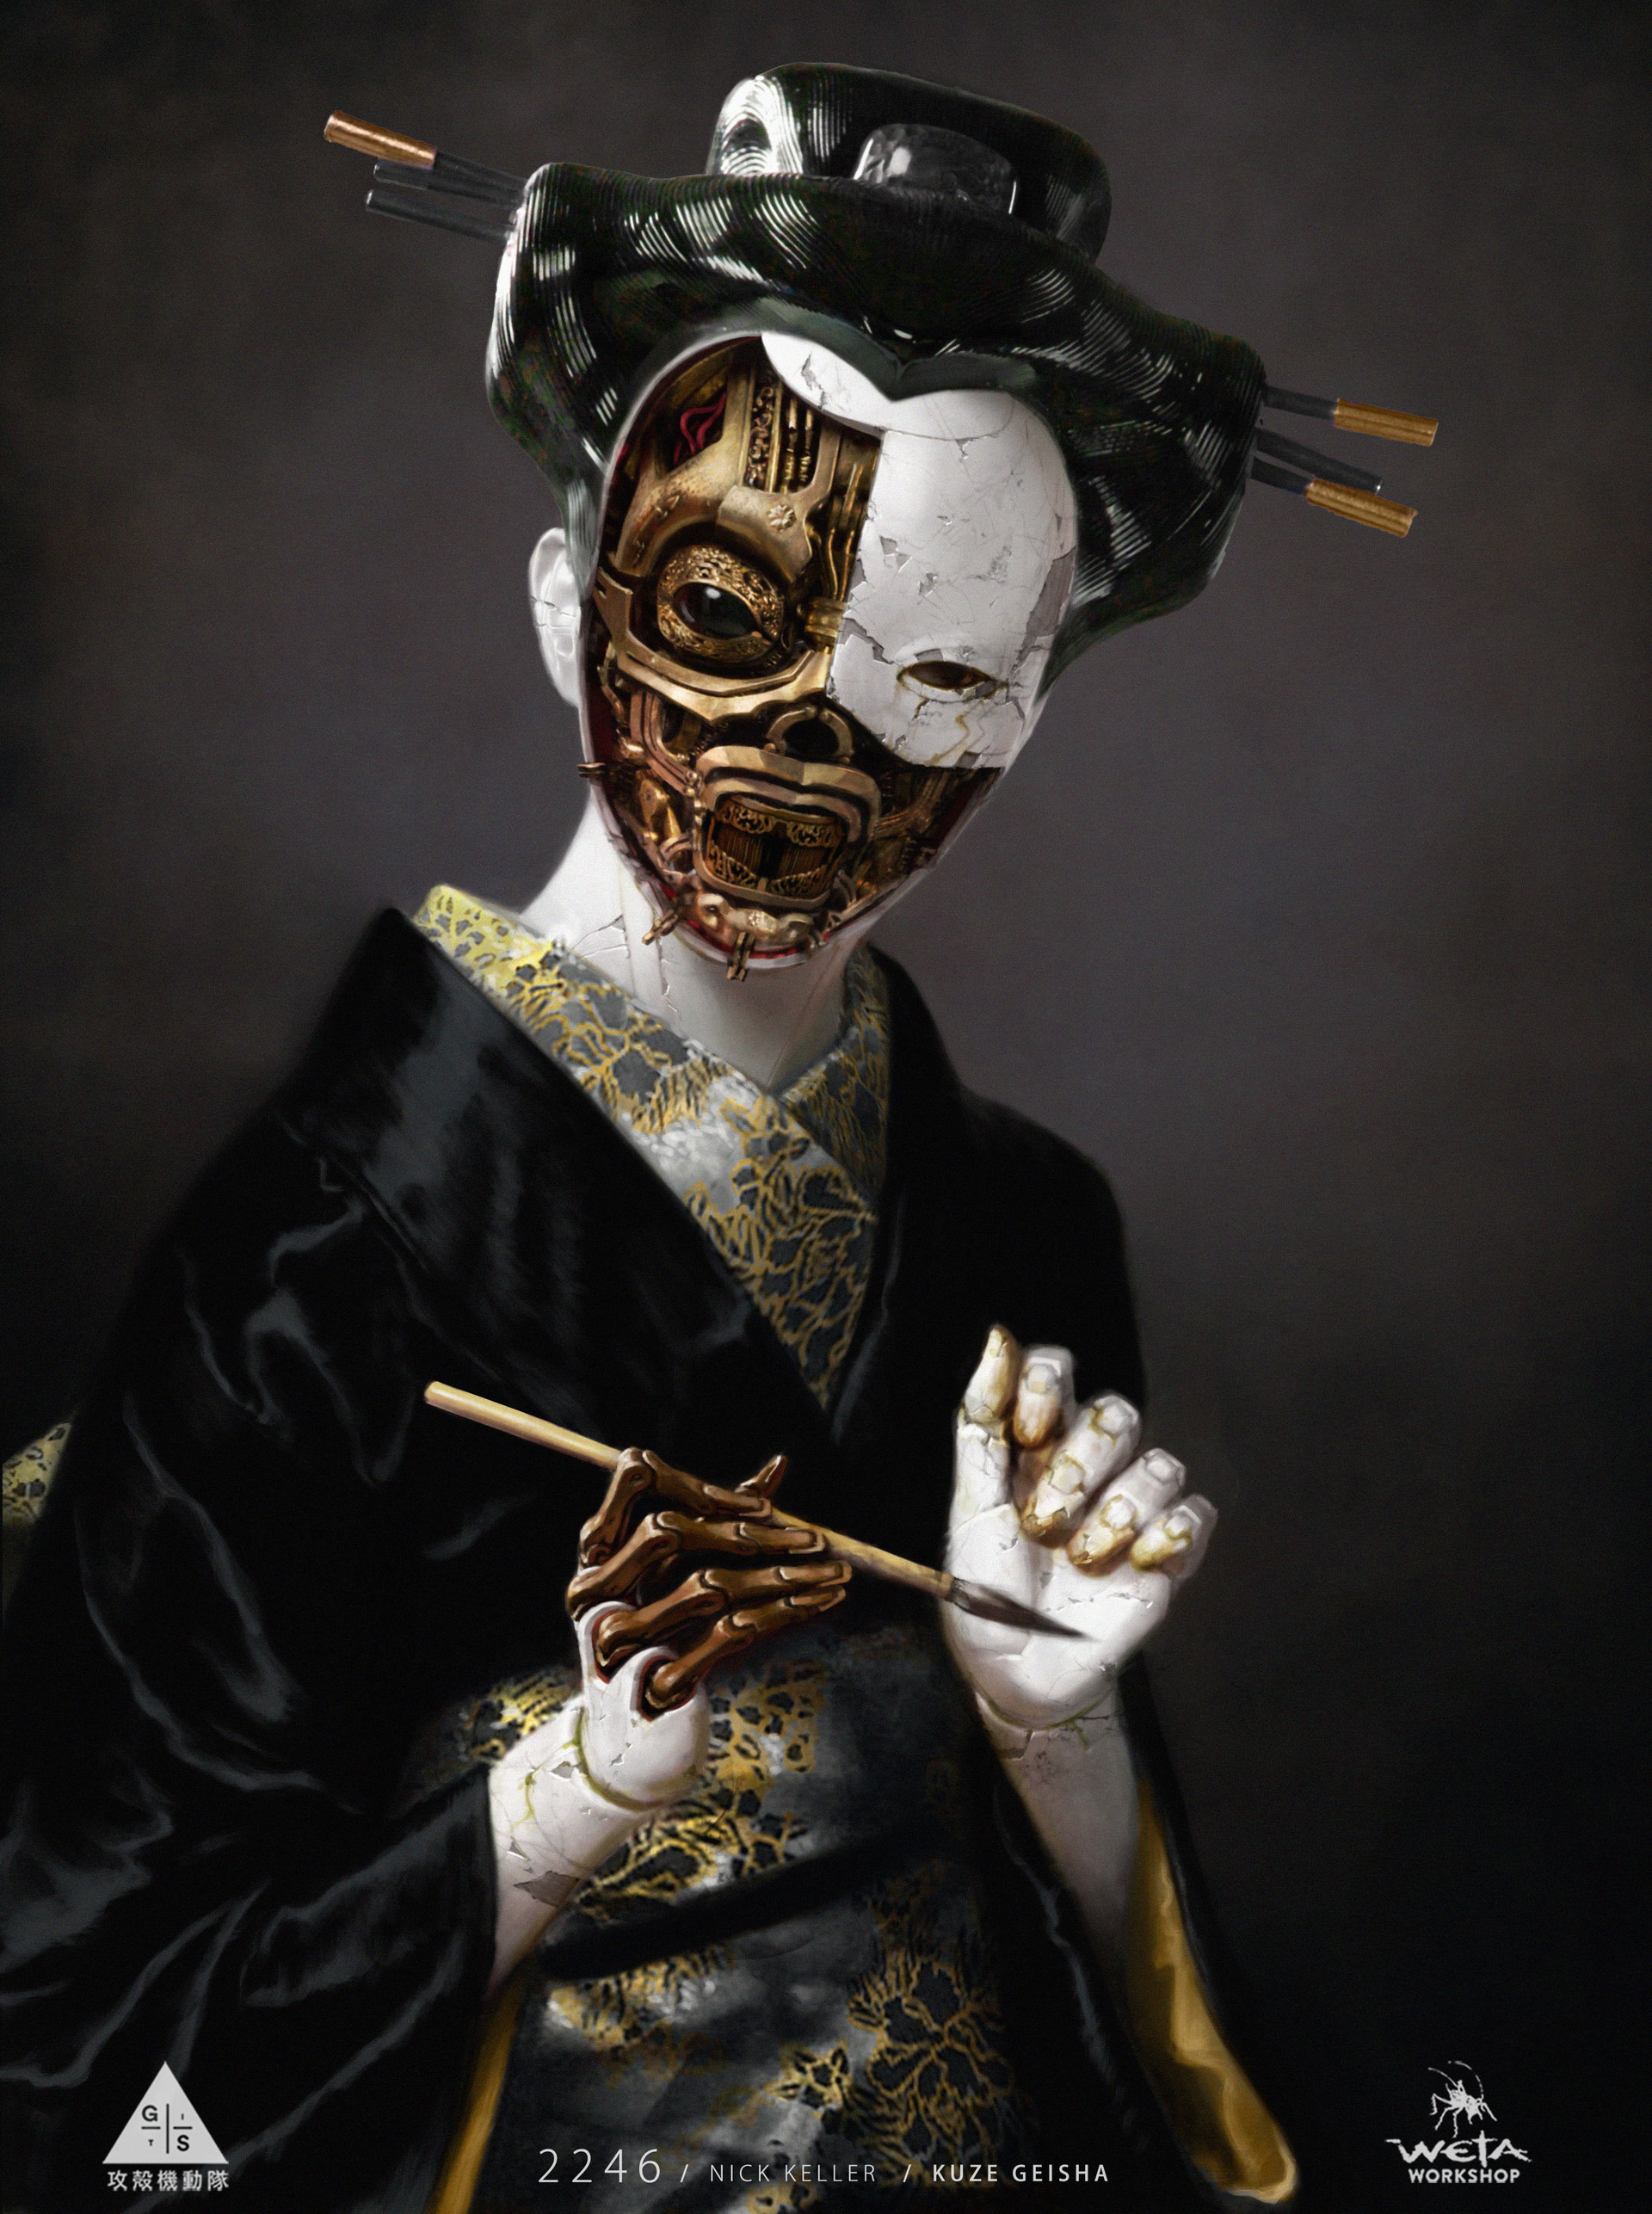 Weta workshop design studio 2246 kuze geisha 14 nk